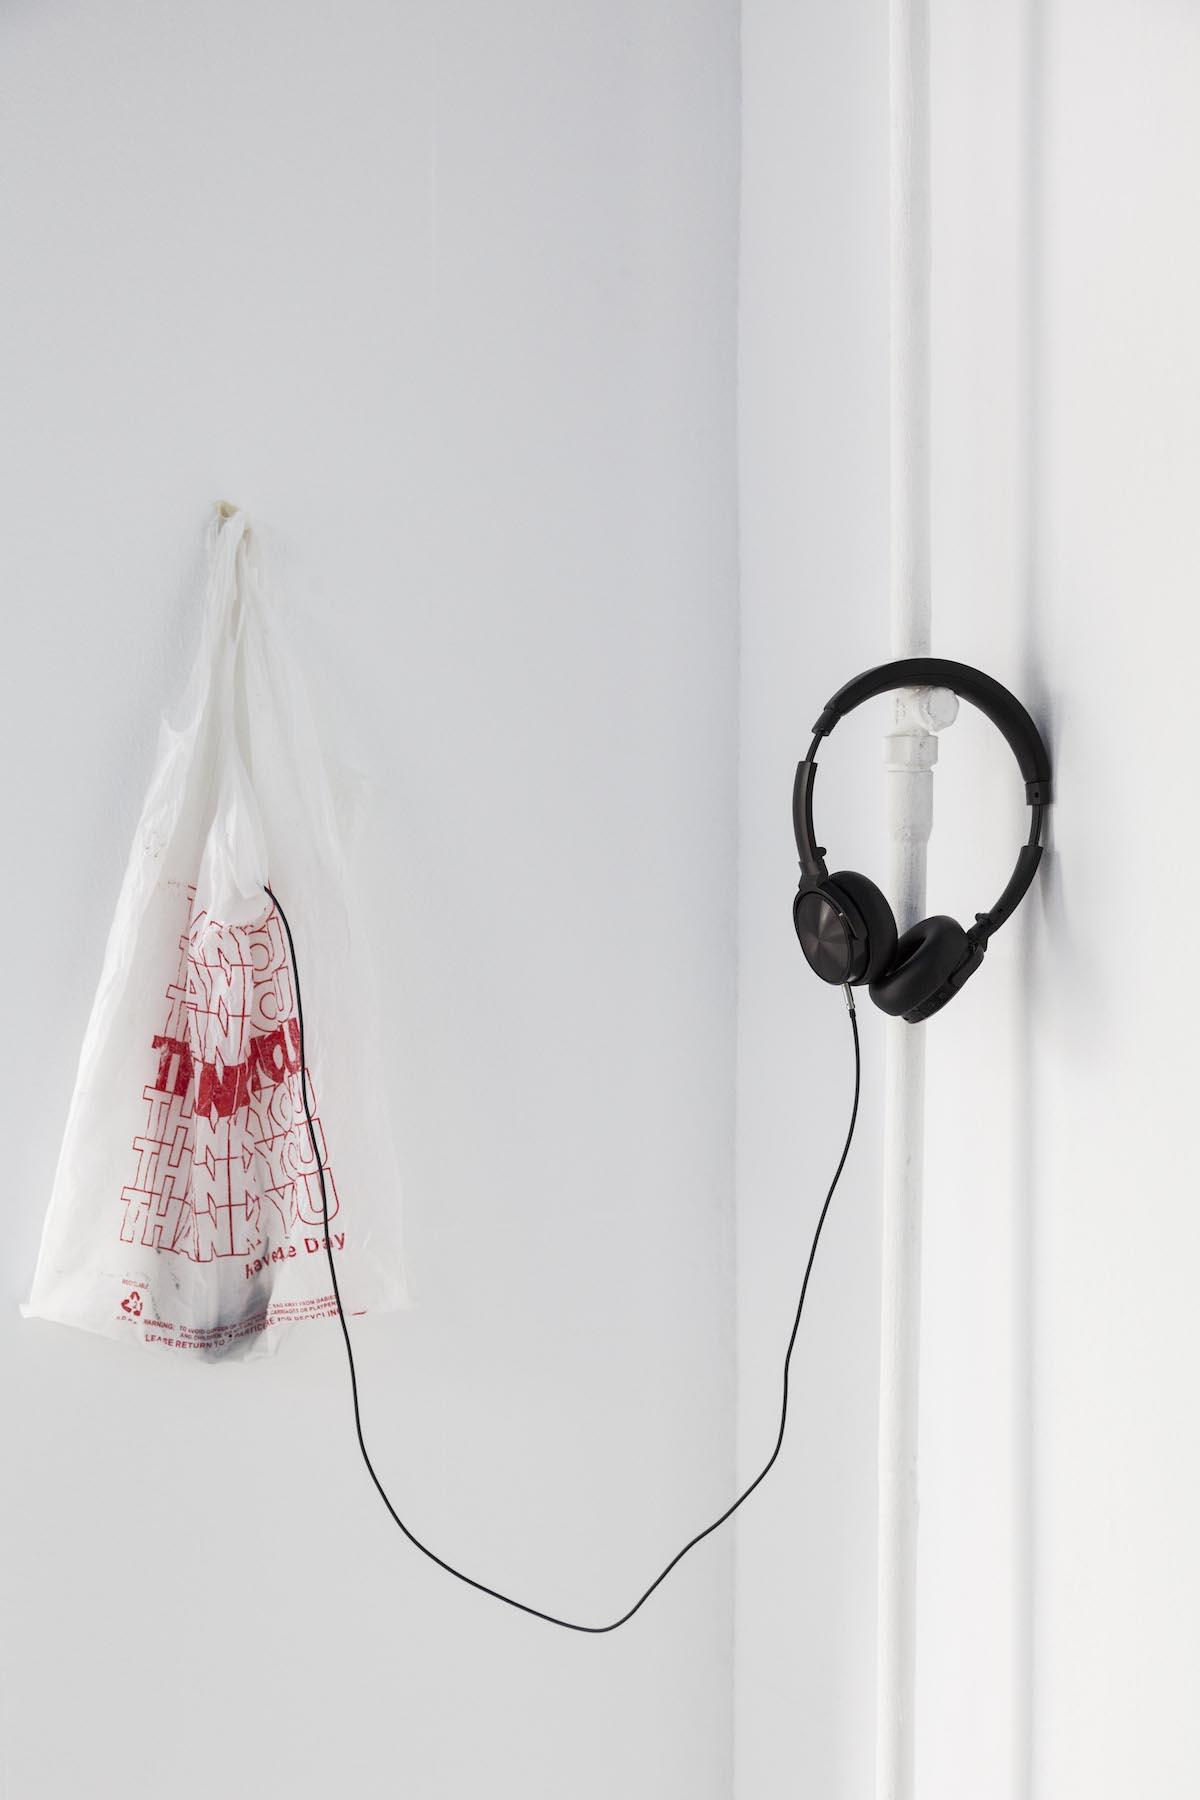 "Noele Ody Thank You, Fuck You, 2012, Plastic bag ""Thank You"", Mp3 player with looped song, headphones"